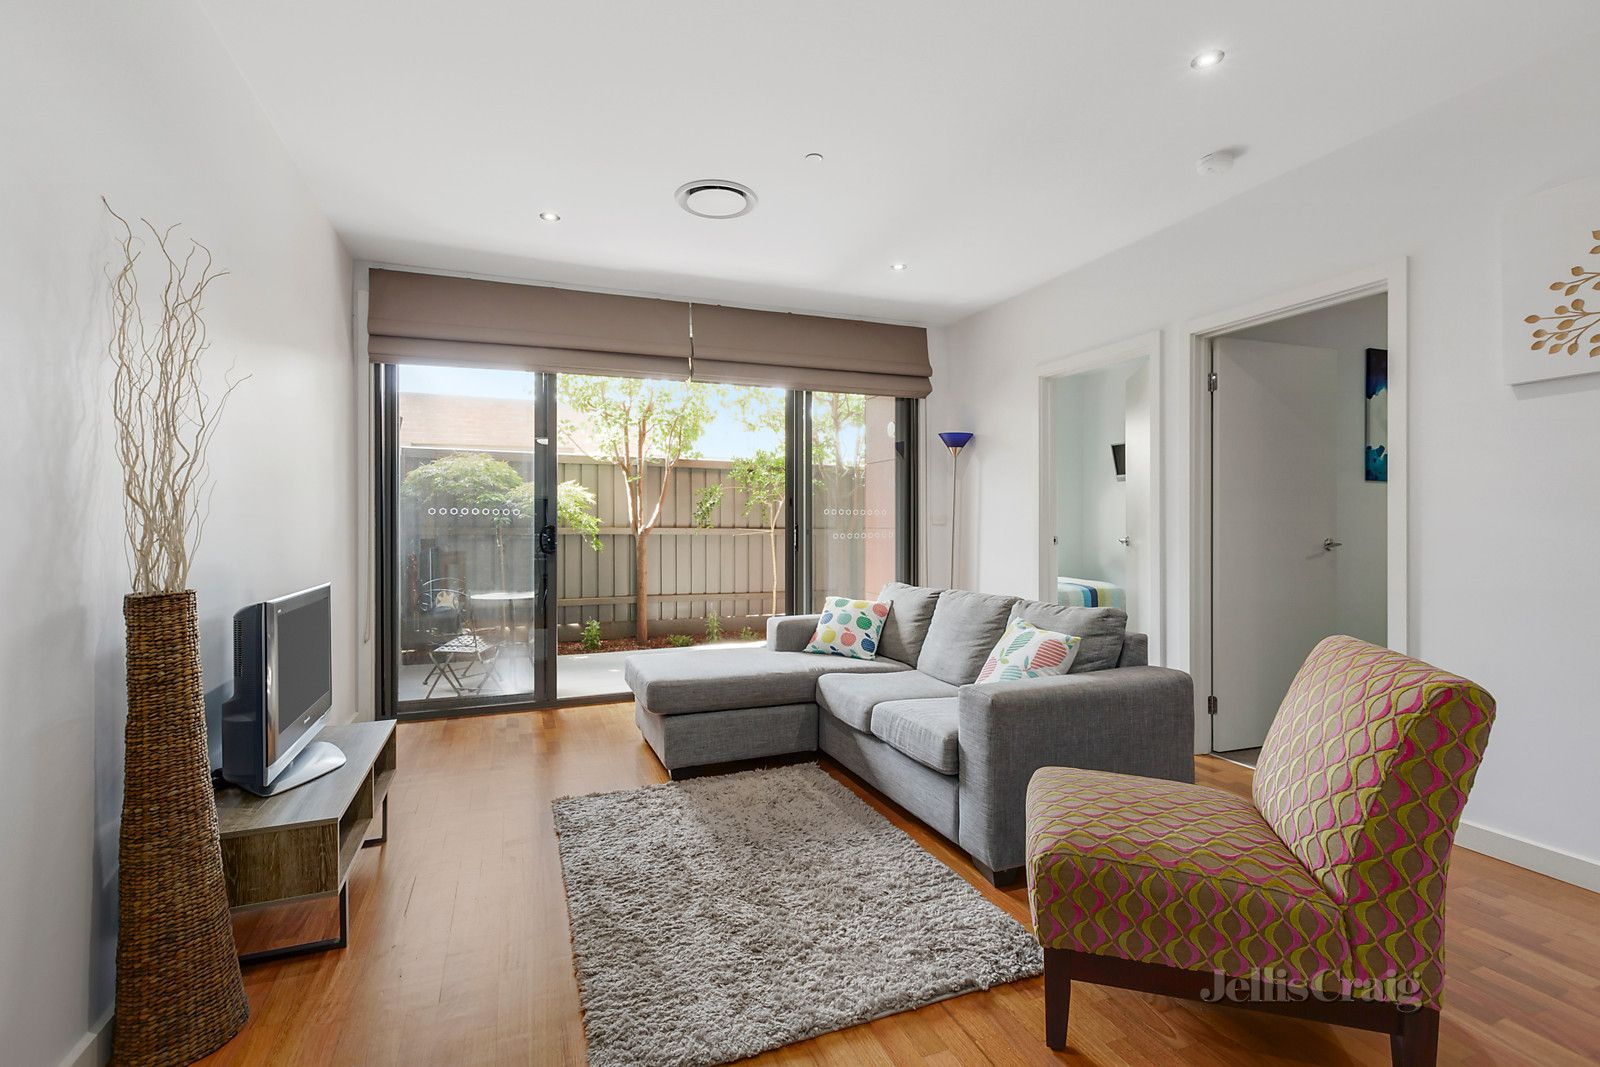 8/107 Whittens Lane, Doncaster VIC 3108, Image 1